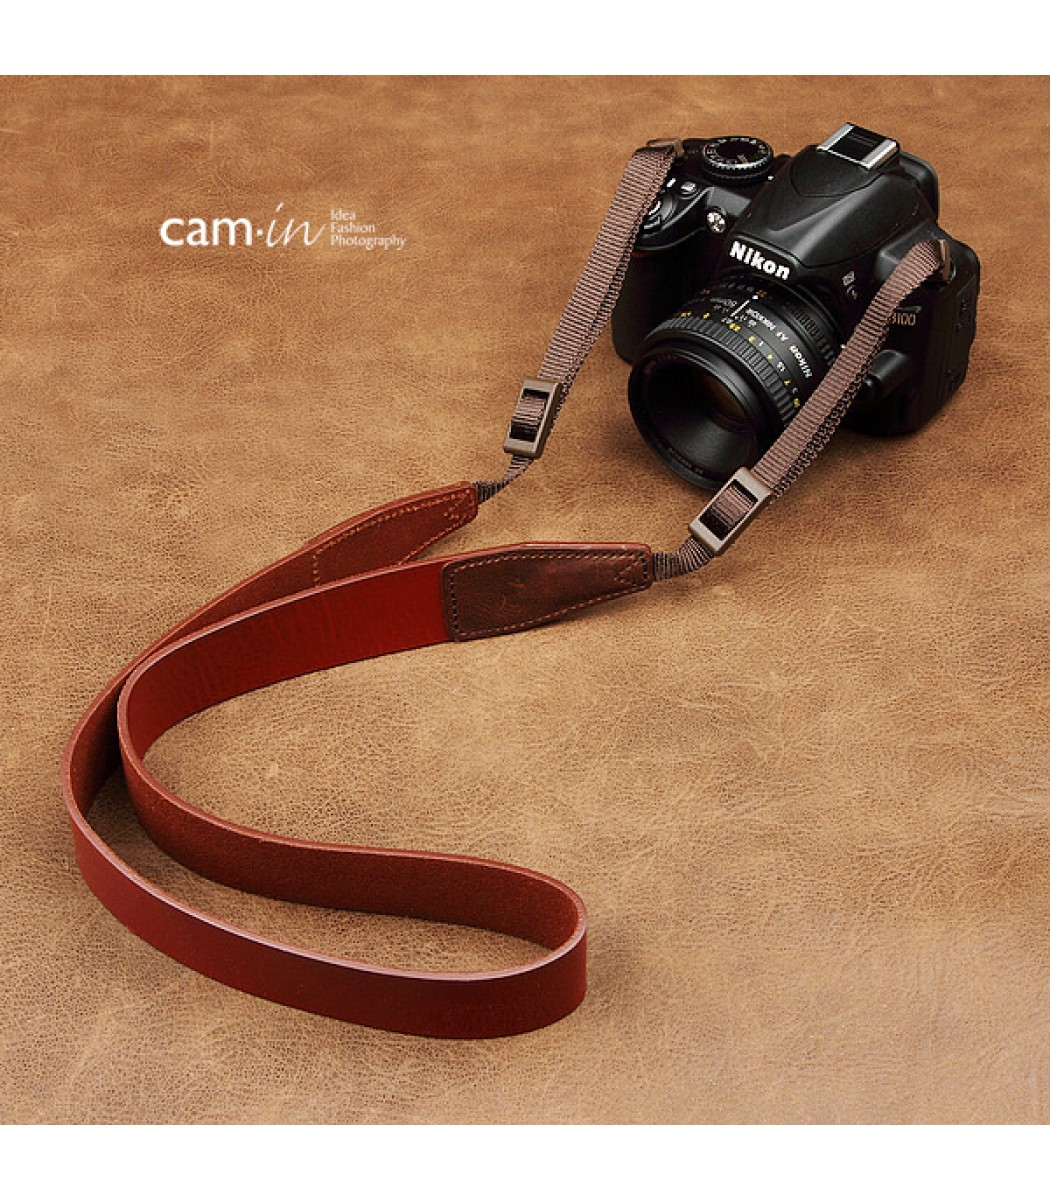 Leather DSLR Camera Strap by Cam-in